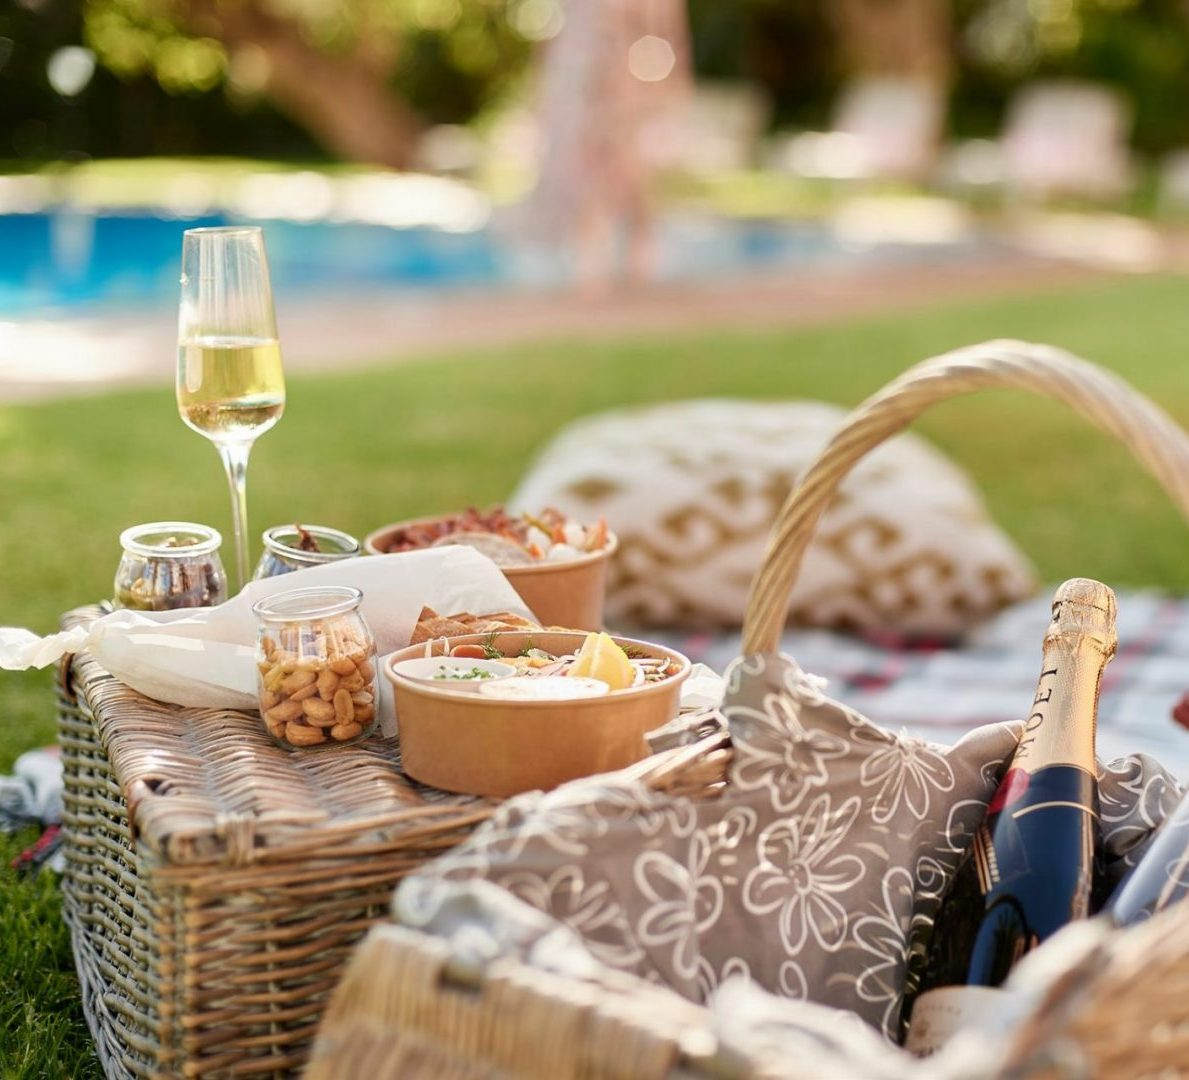 POOLSIDE PICNICS AT THE MOUNT NELSON